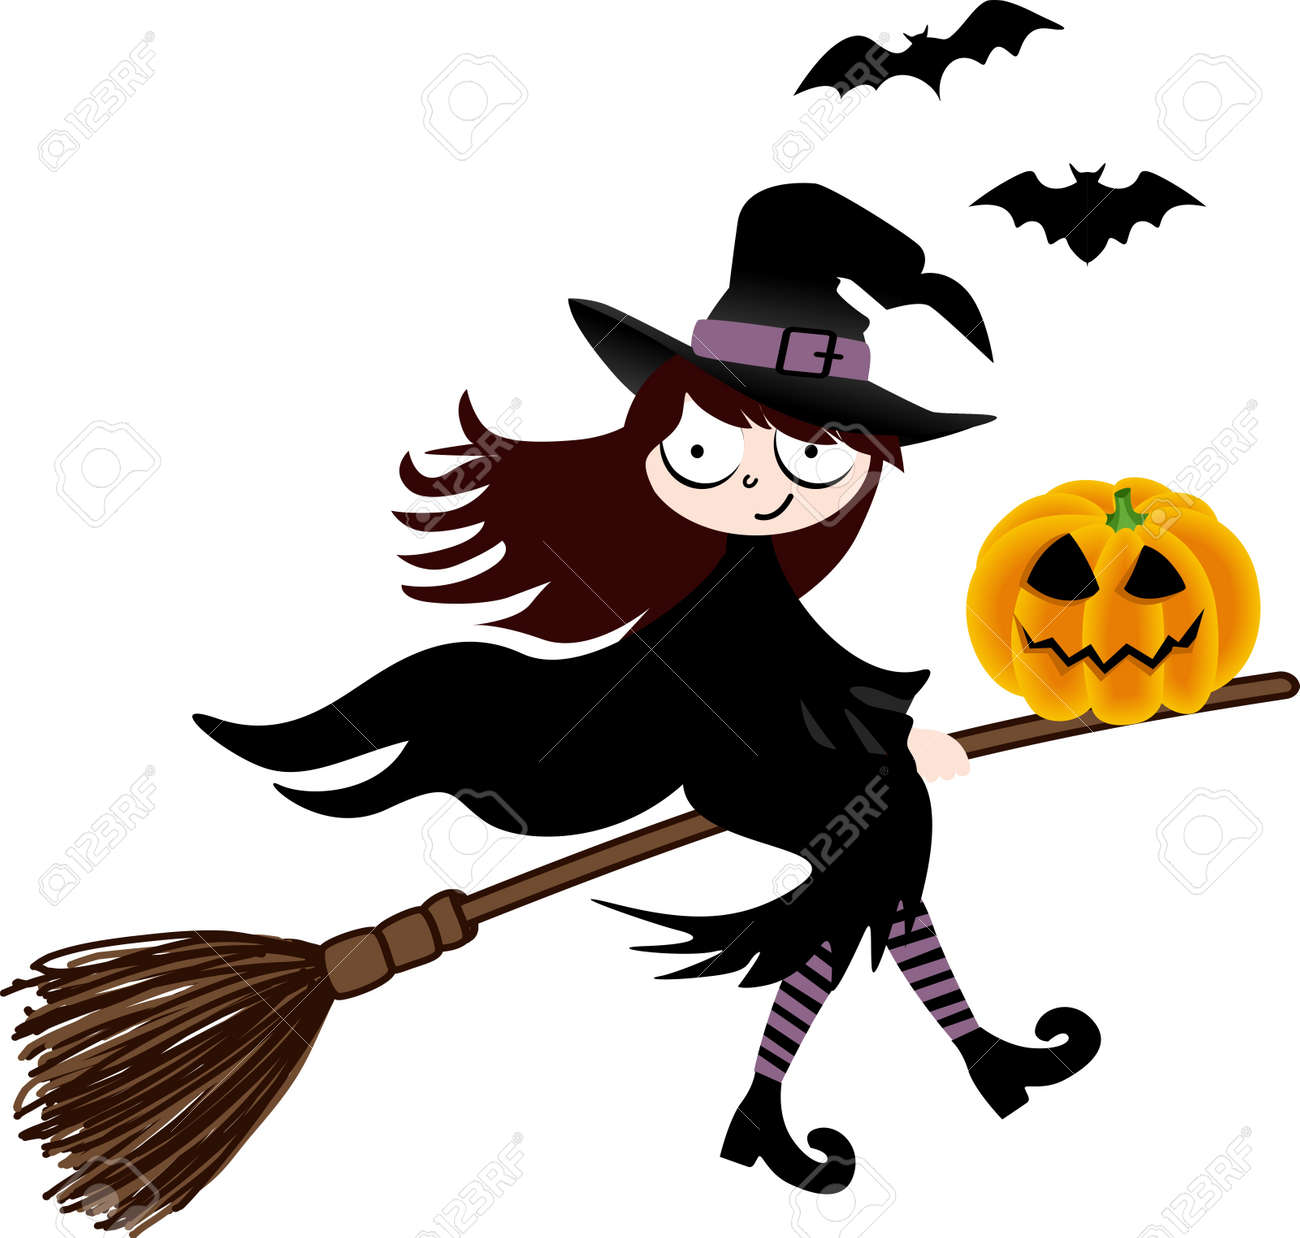 Halloween Witch Images & Stock Pictures. Royalty Free Halloween ...